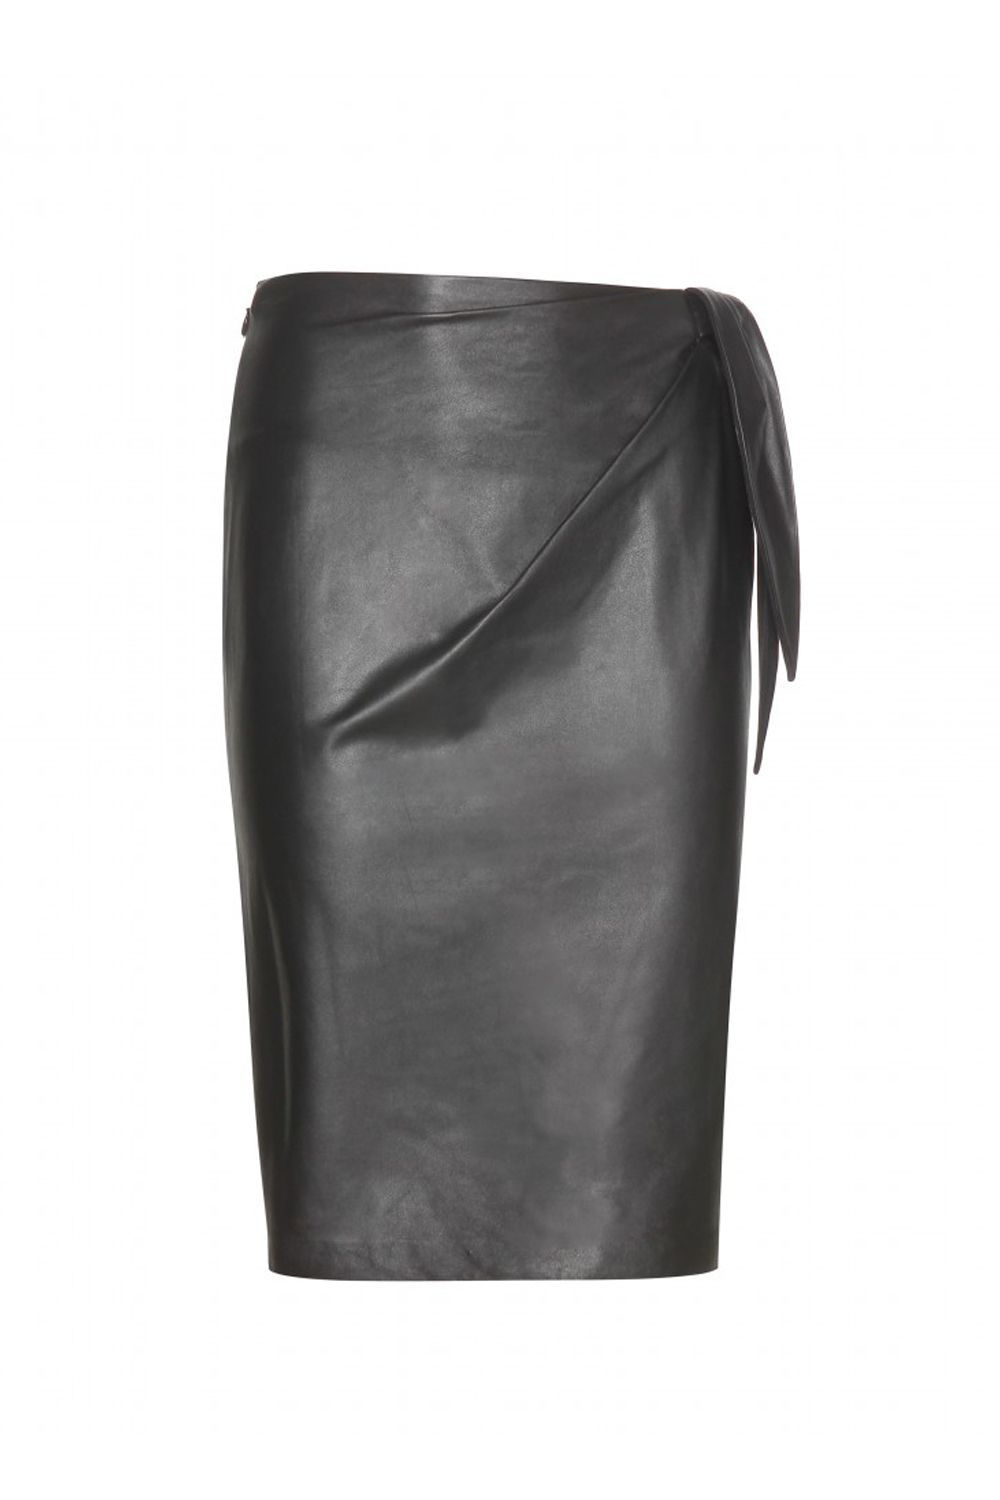 "<p class=""p1"">Totally versatile, yet statement-making, it's the work wardrobe equivalent of your go-to pair of jeans.</p><p class=""p1"">Diane von Furstenberg Roxanne Leather Skirt, $816; <a href=""http://www.mytheresa.com/en-us/roxanne-leather-skirt.html"" target=""_blank"">mytheresa.com</a>.</p>"